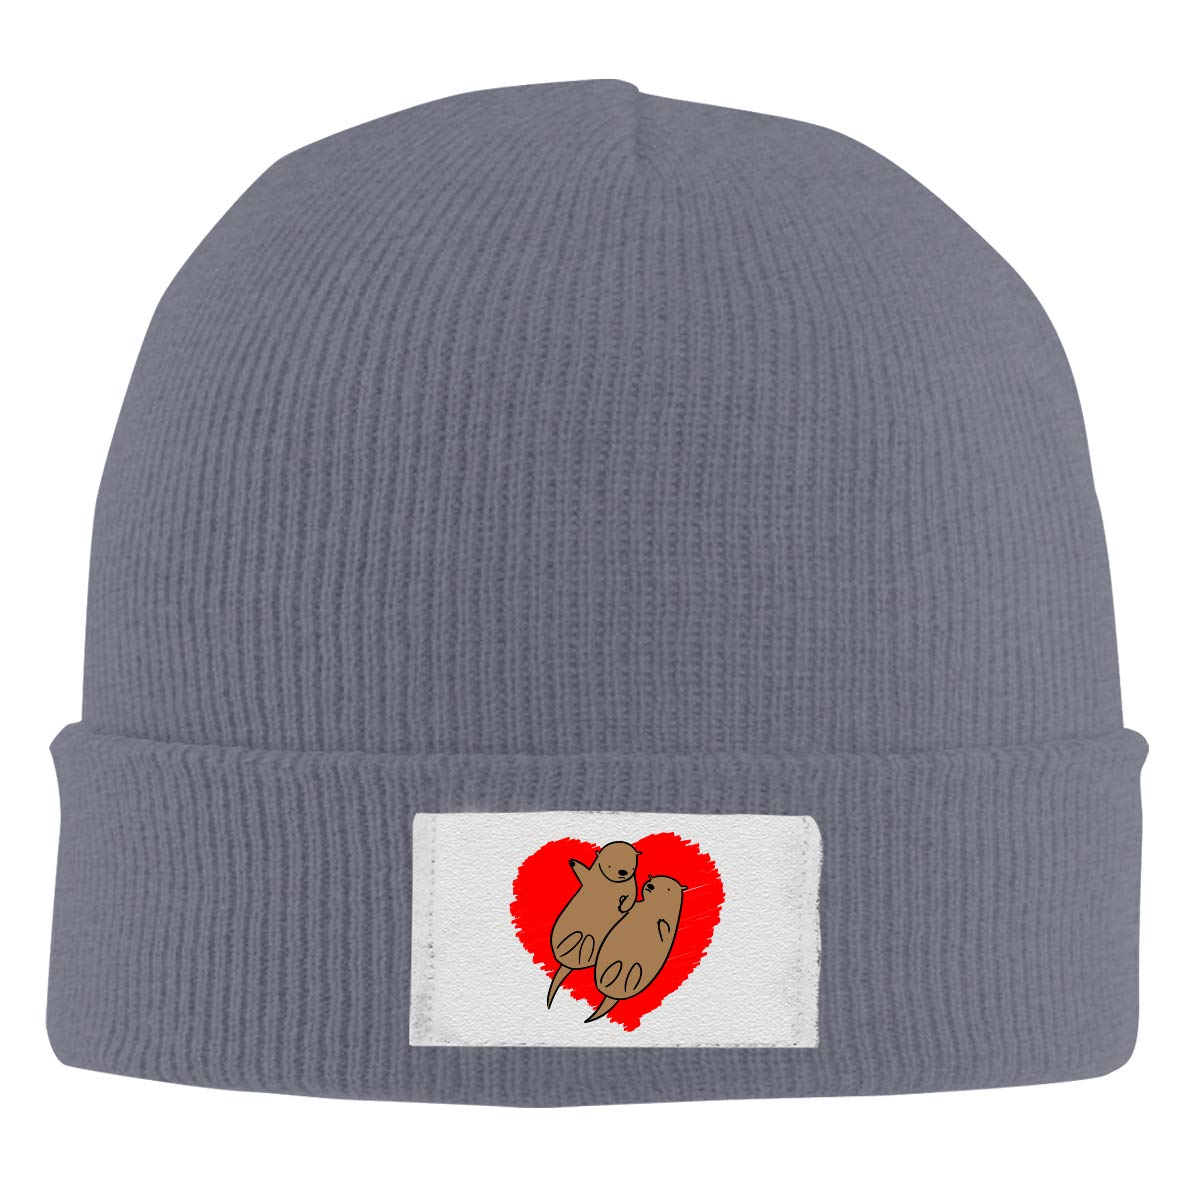 Skull Caps Mouse Lovers Winter Warm Knit Hats Stretchy Cuff Beanie Hat Black